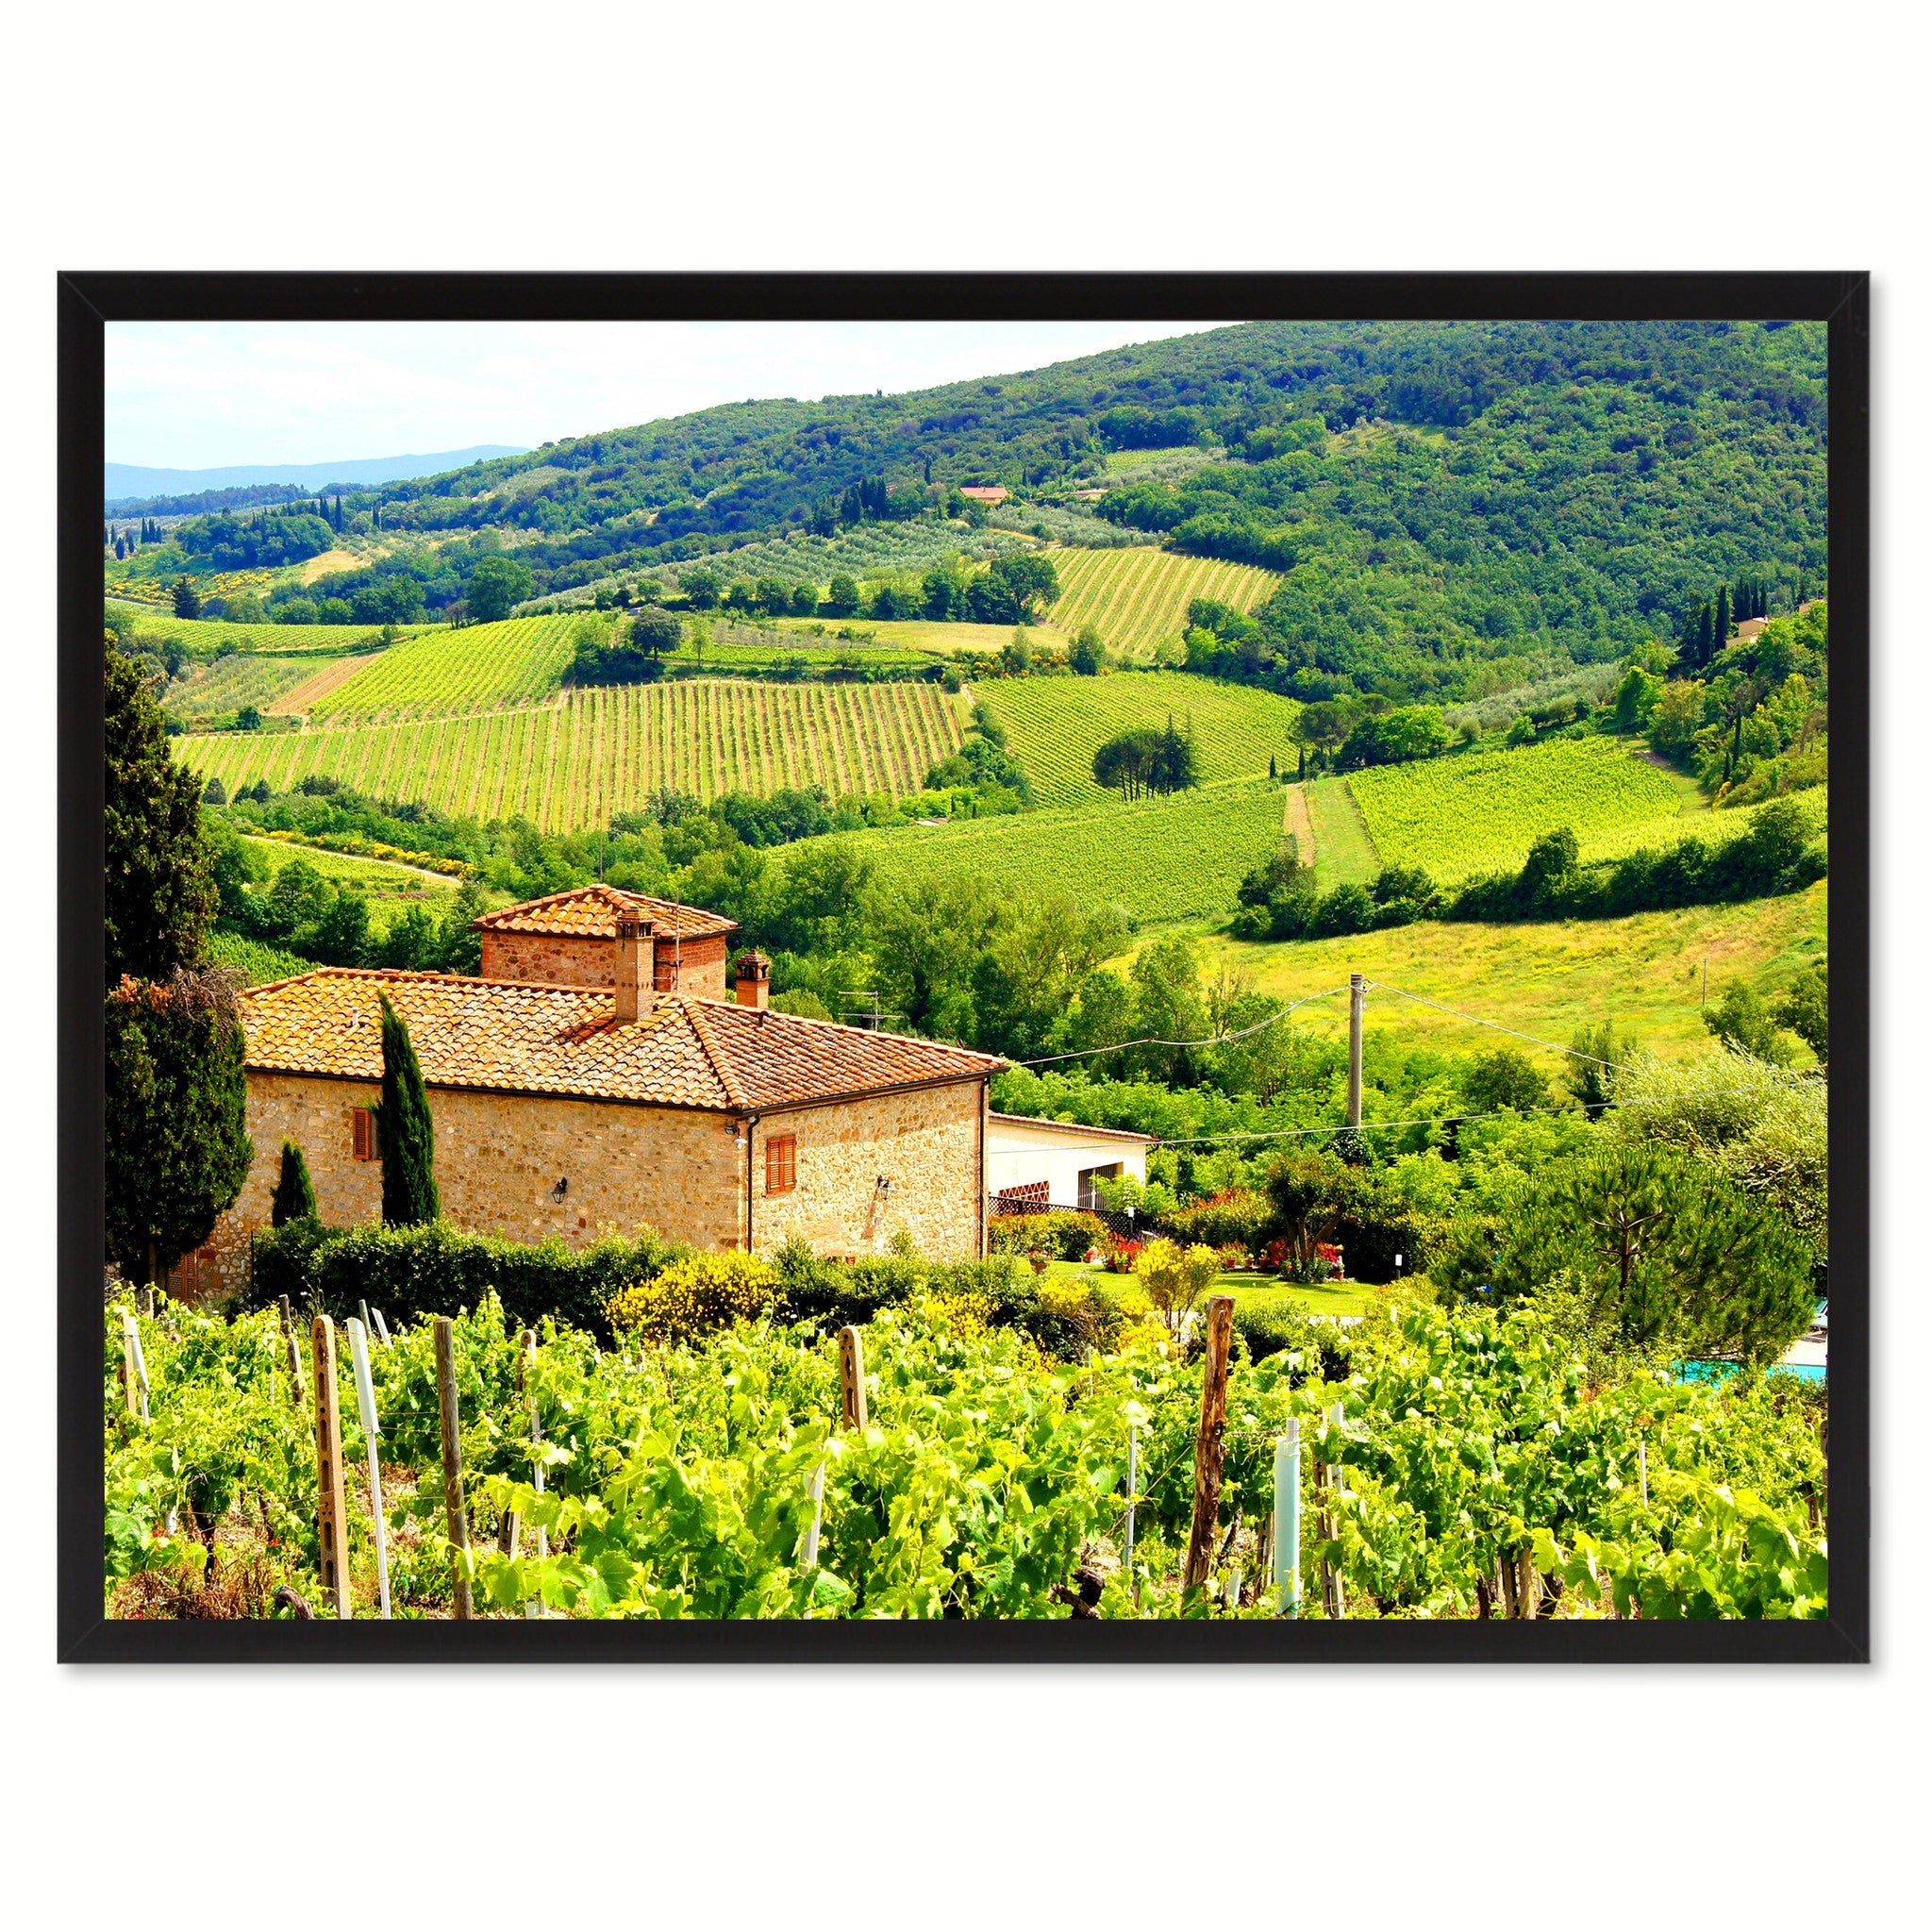 Vineyard Tuscany Italy Landscape Photo Canvas Print Pictures Frames Home Décor Wall Art Gifts